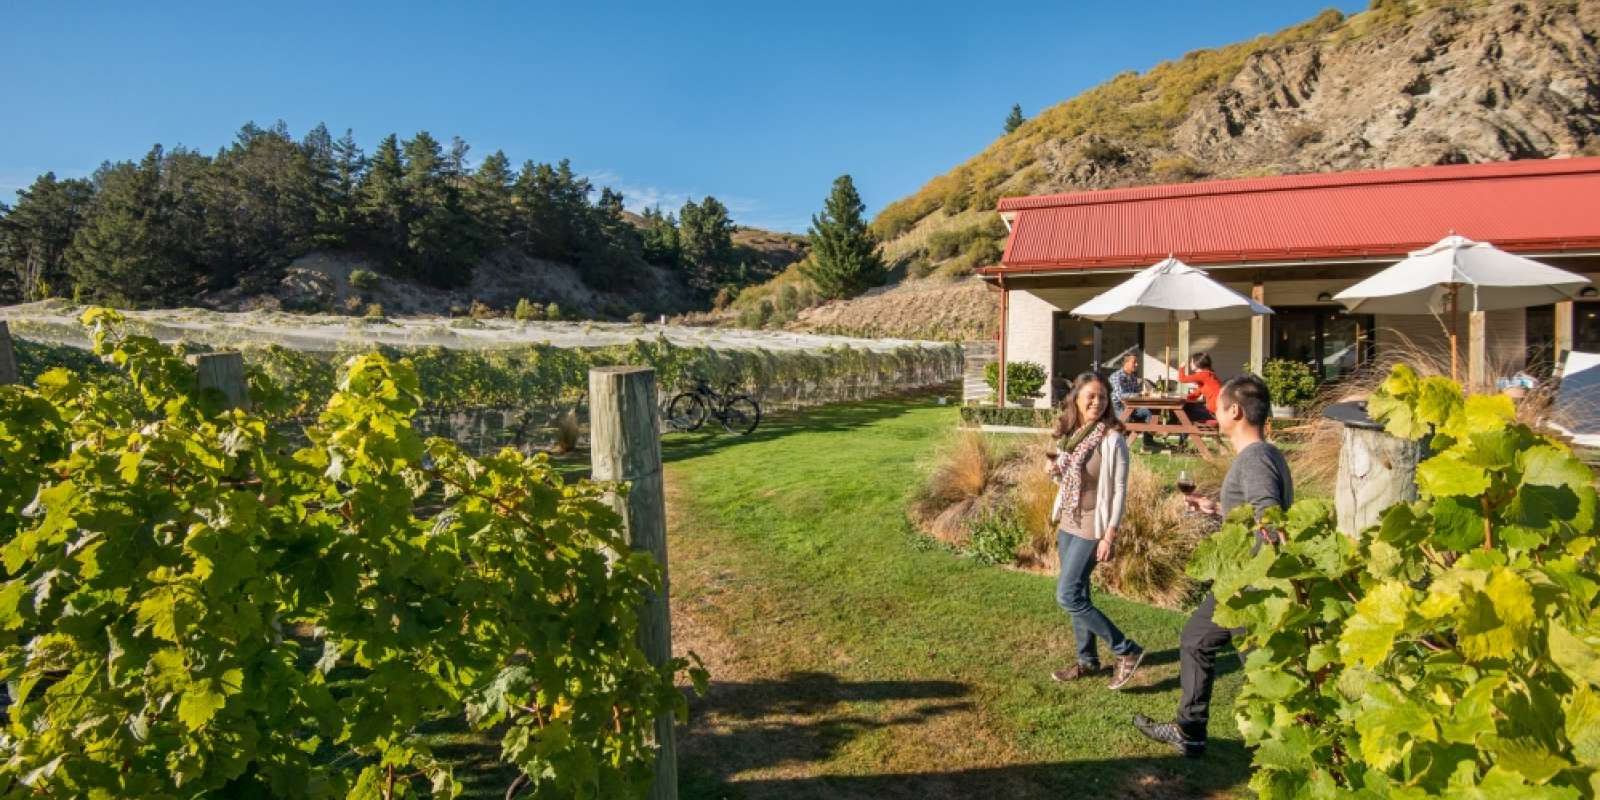 Visit a winery in Gibbston Valley